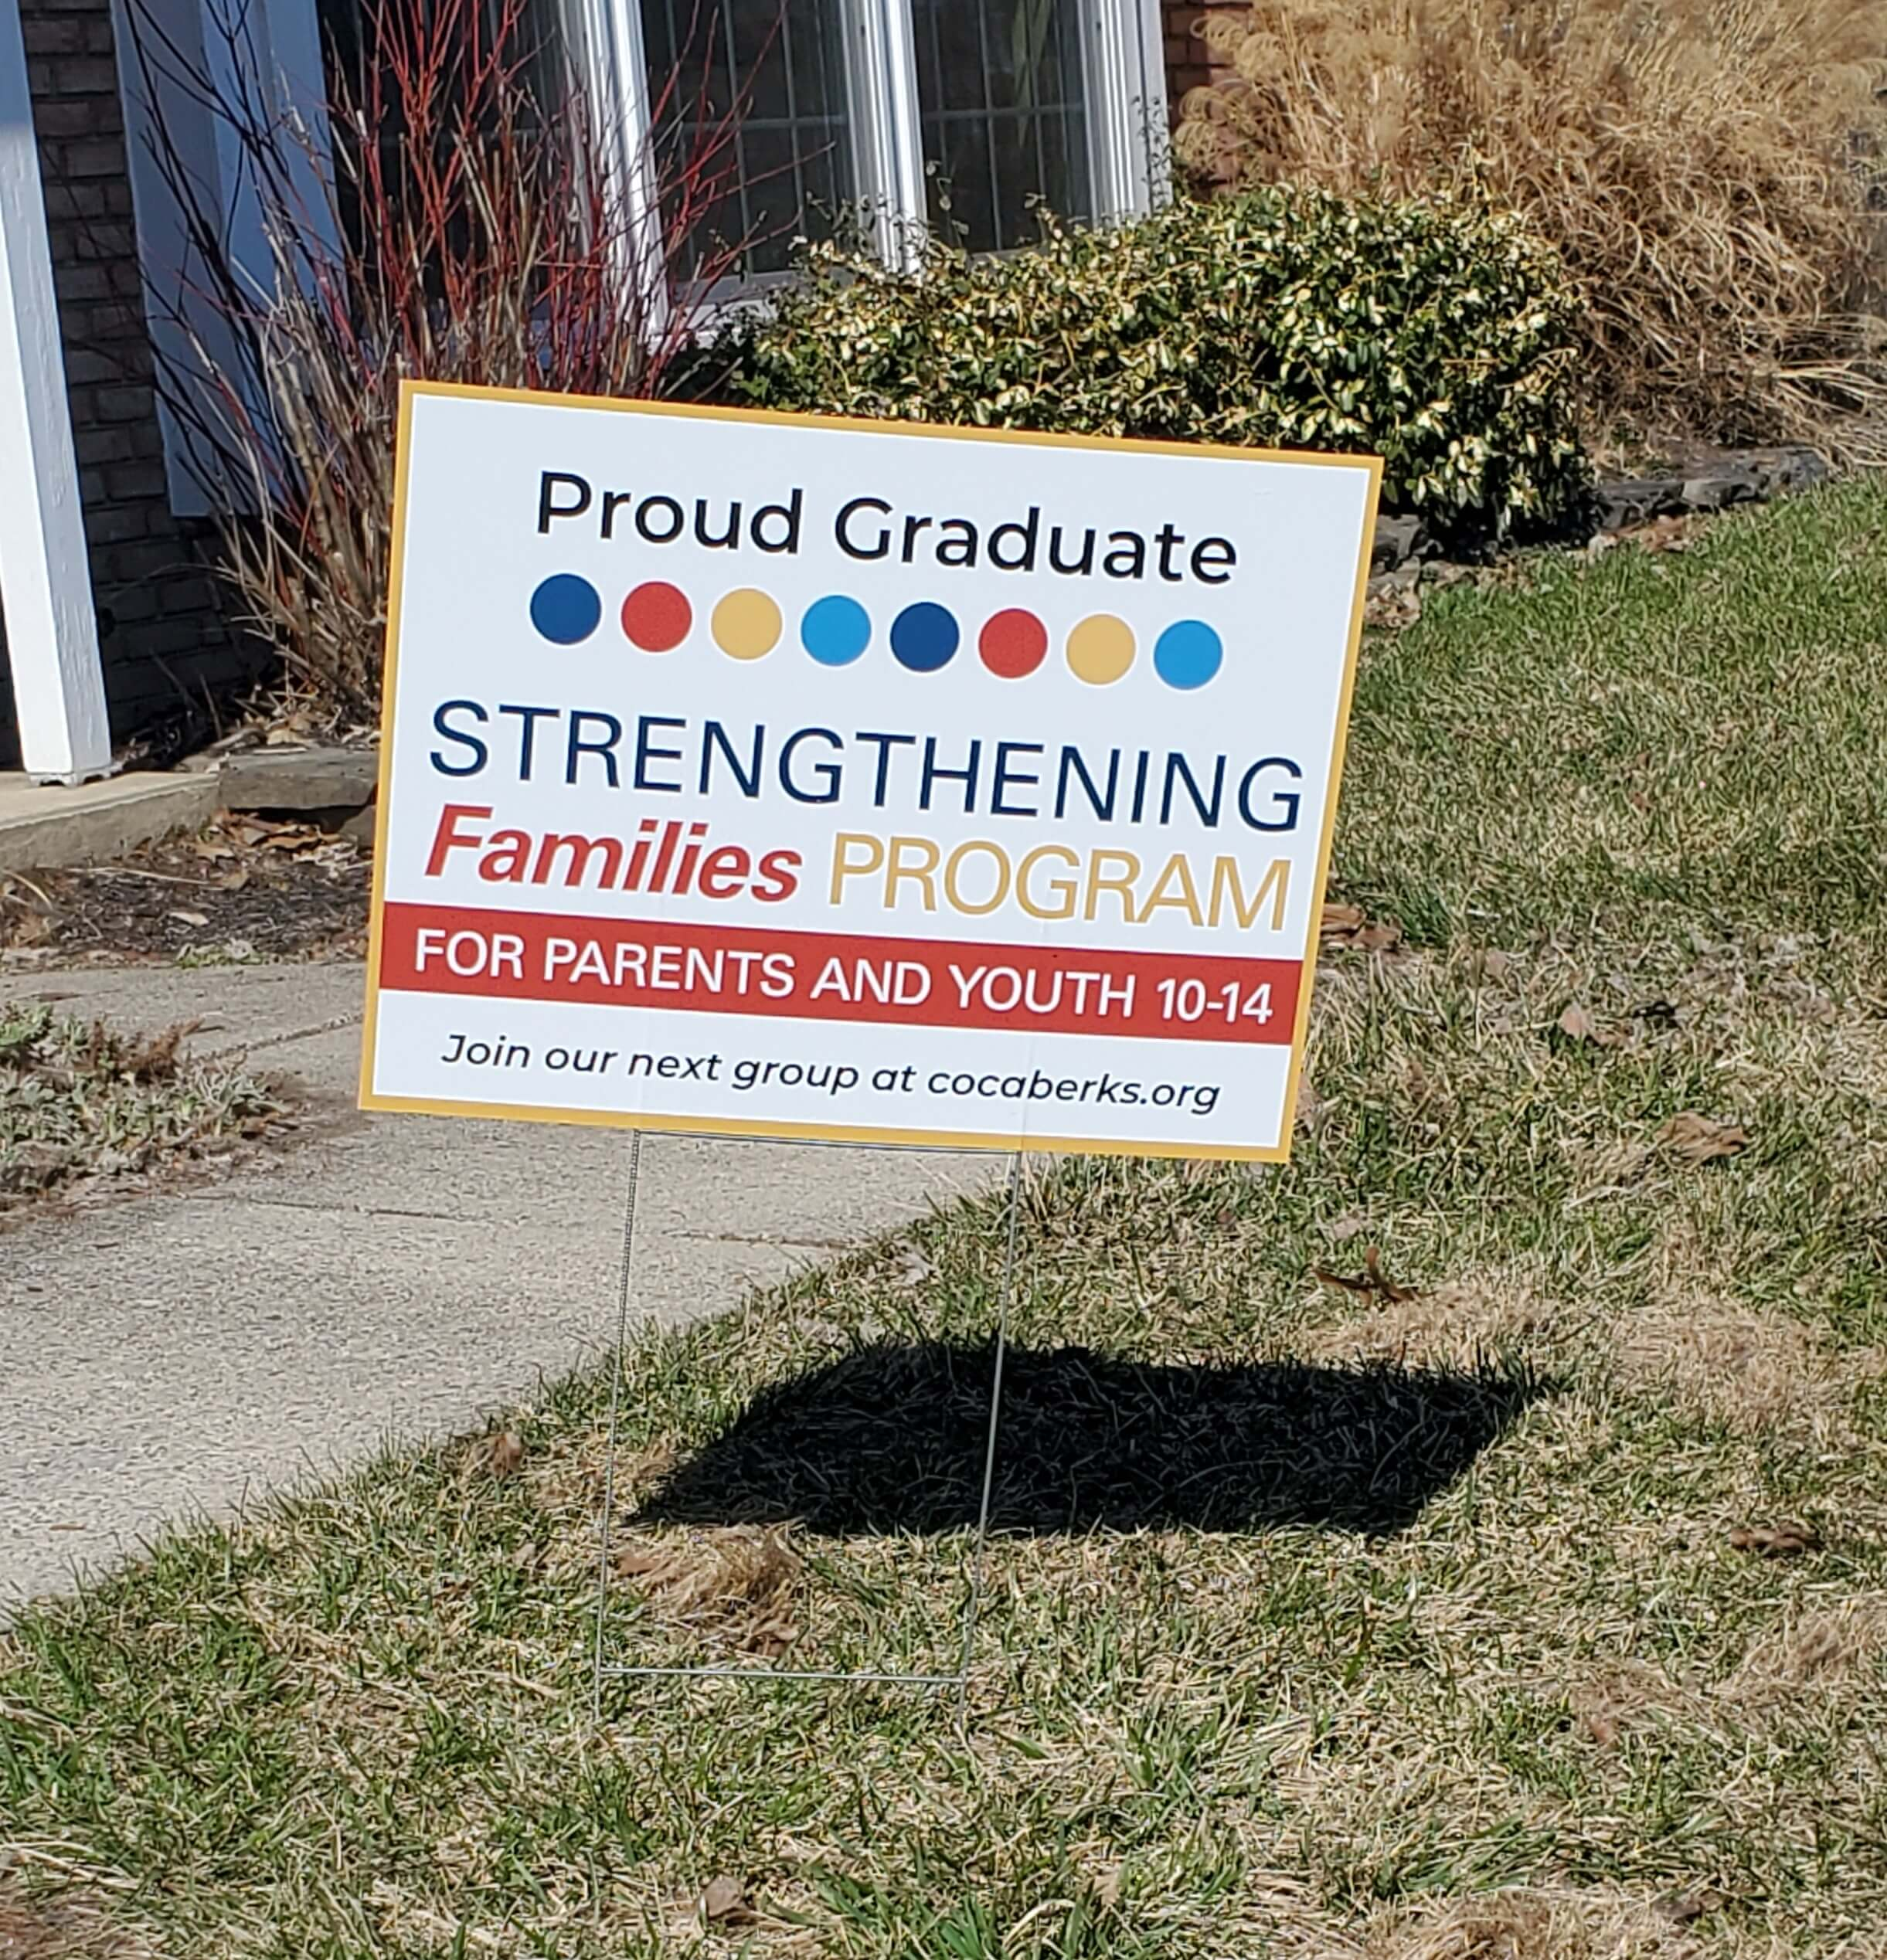 Strengthening Families Program: For Parents and Youth 10-14